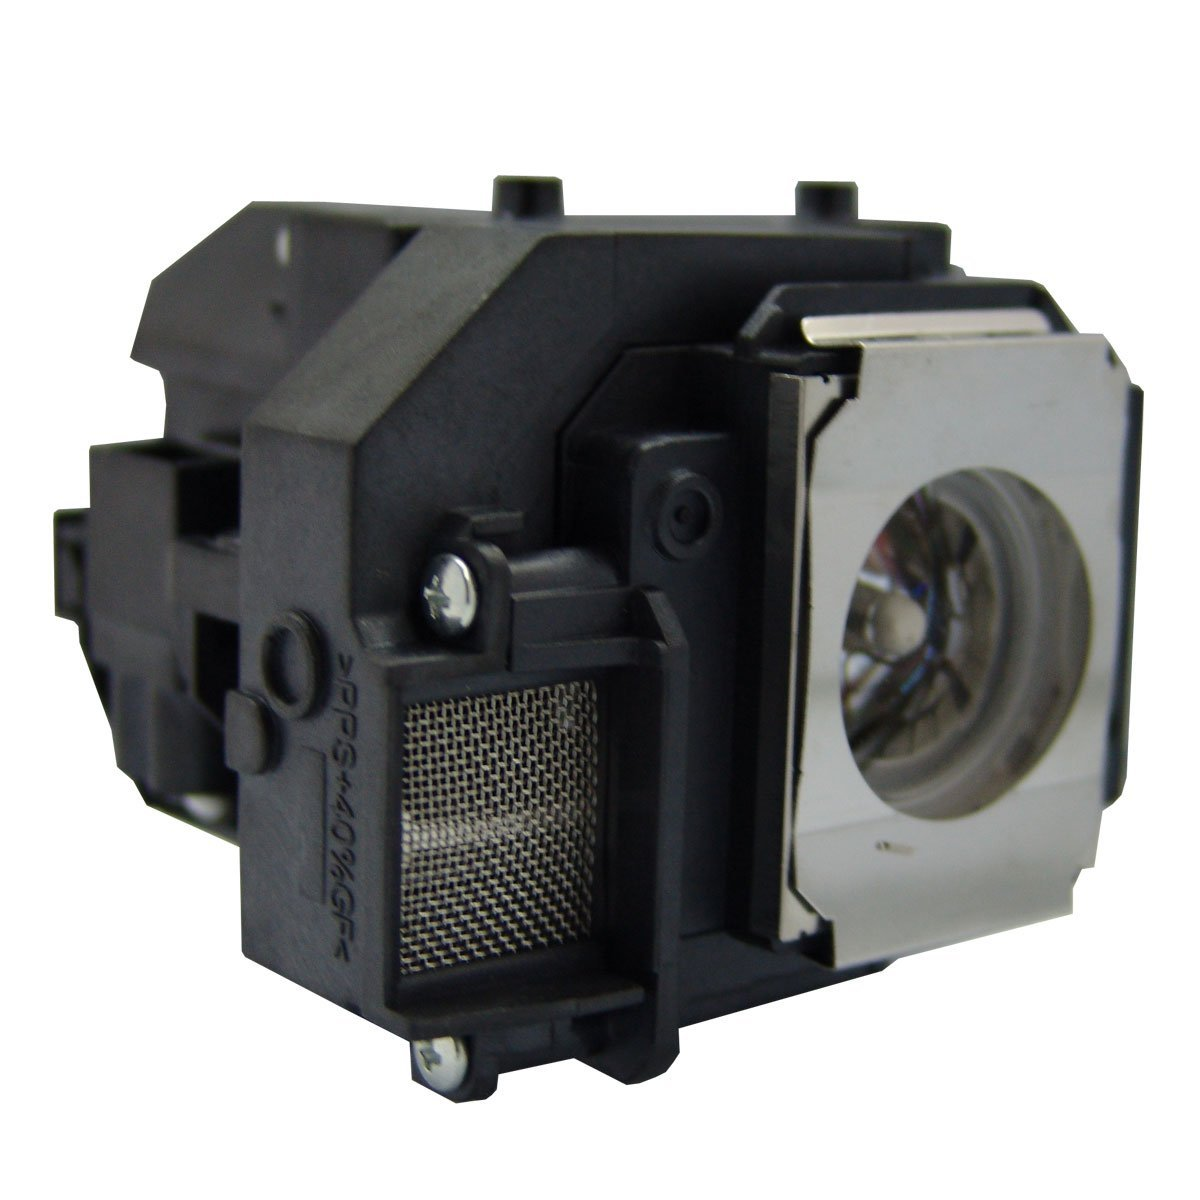 ELPLP56 V13H010L56 for Epson EH-DM3 EH-DM3S MovieMate 60 MovieMate 62 Projector Bulb Lamp with housing projector replacement lamp elplp44 v13h010l44 for eh dm2 emp dm1 moviemate 50 moviemate 55 with housing happybate